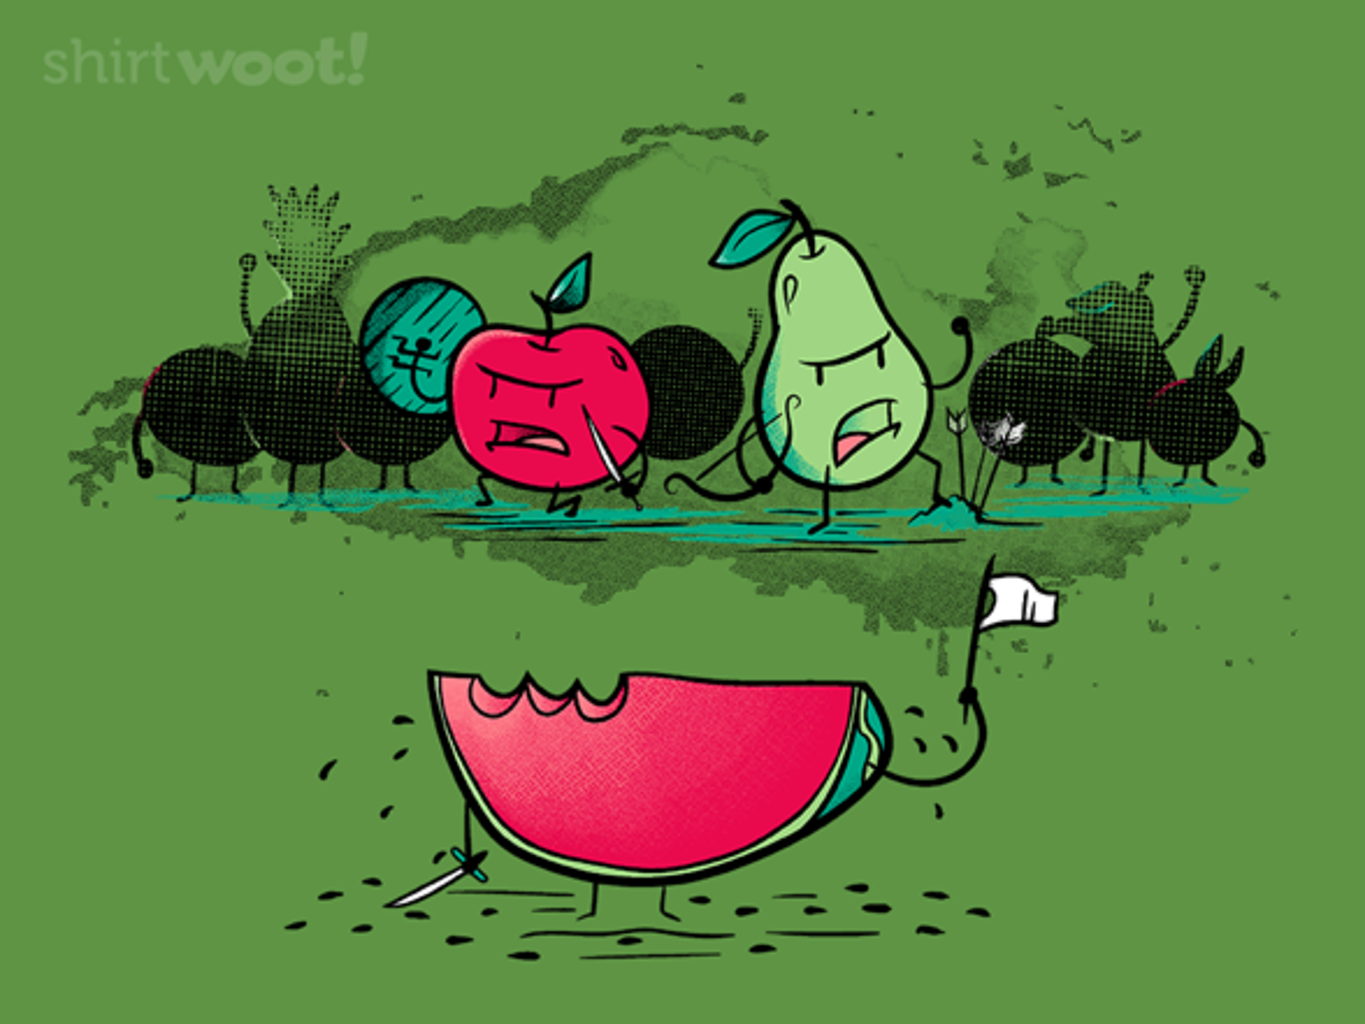 Woot!: Scared Seedless - $15.00 + Free shipping